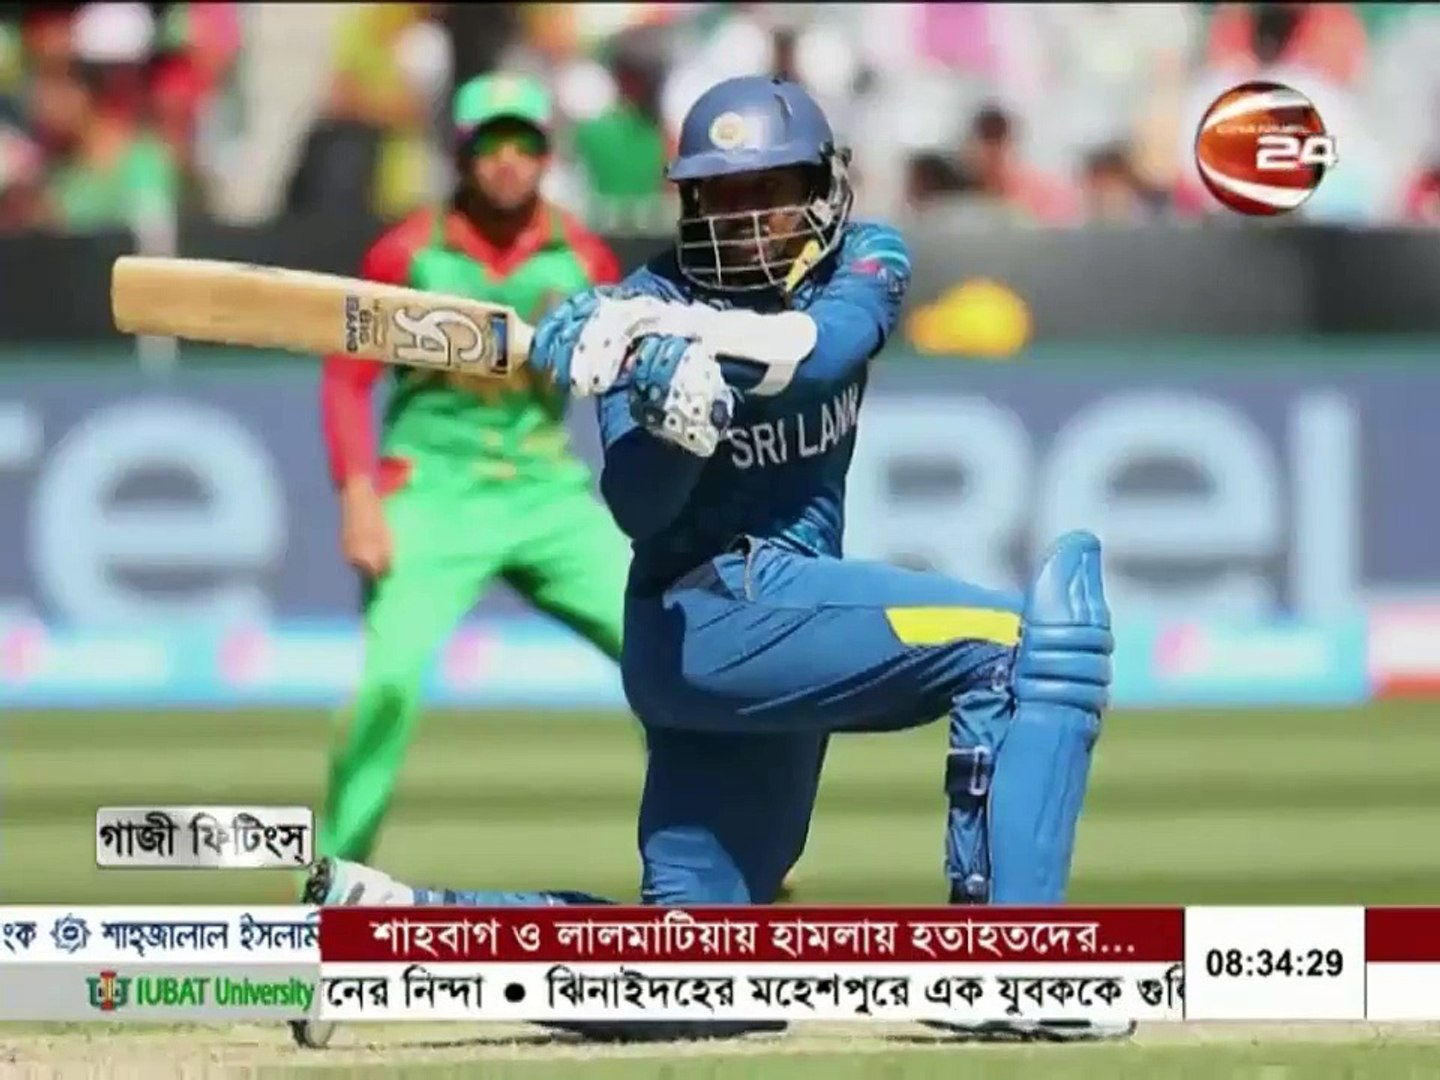 Bangla Channel 24 Sports News november 1,2015